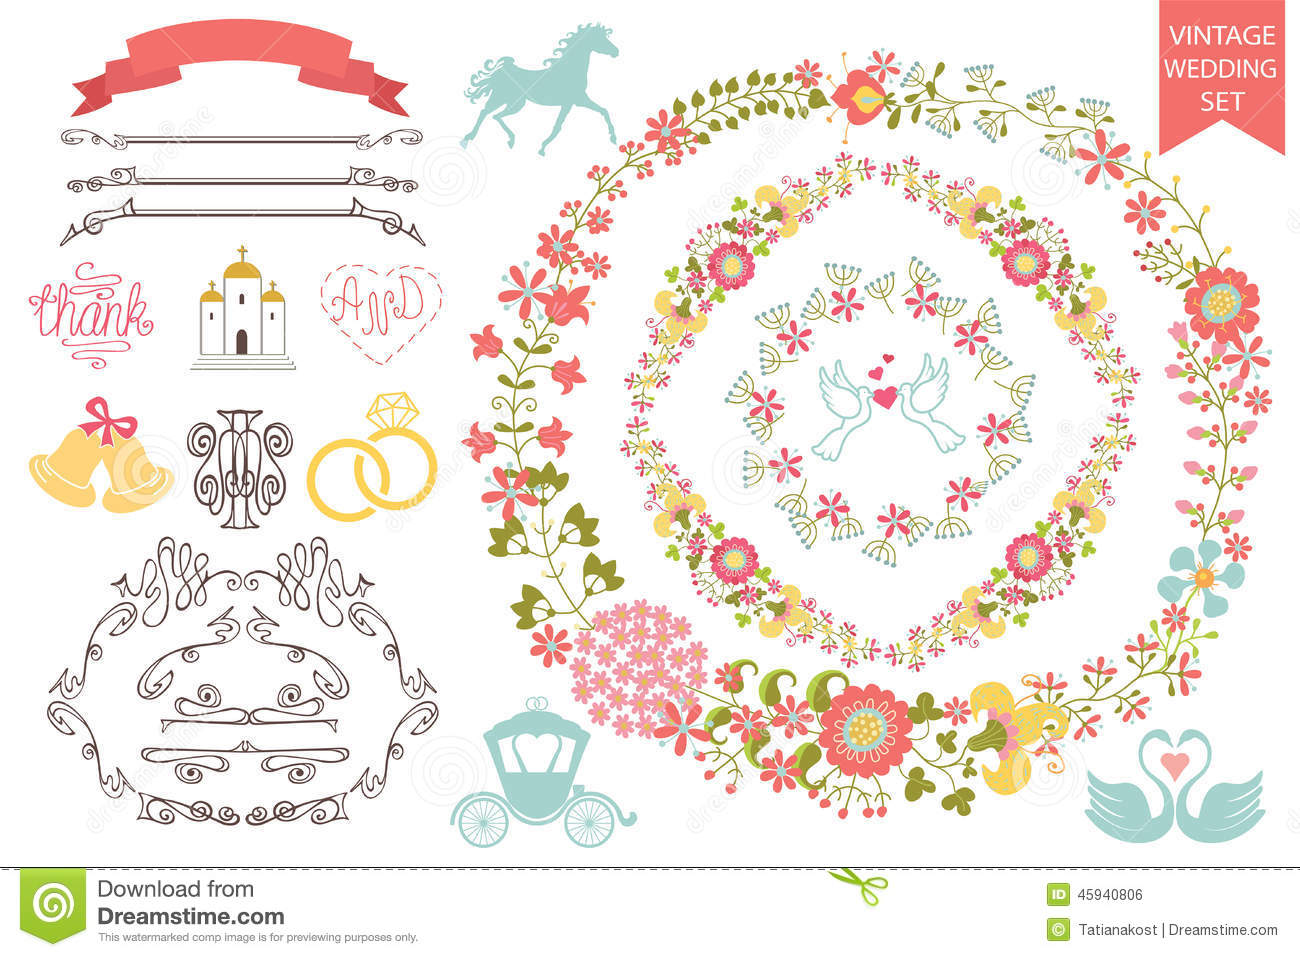 Vintage Wedding Set.Floral Wreath,icons, Swirling Stock Vector - Image ...